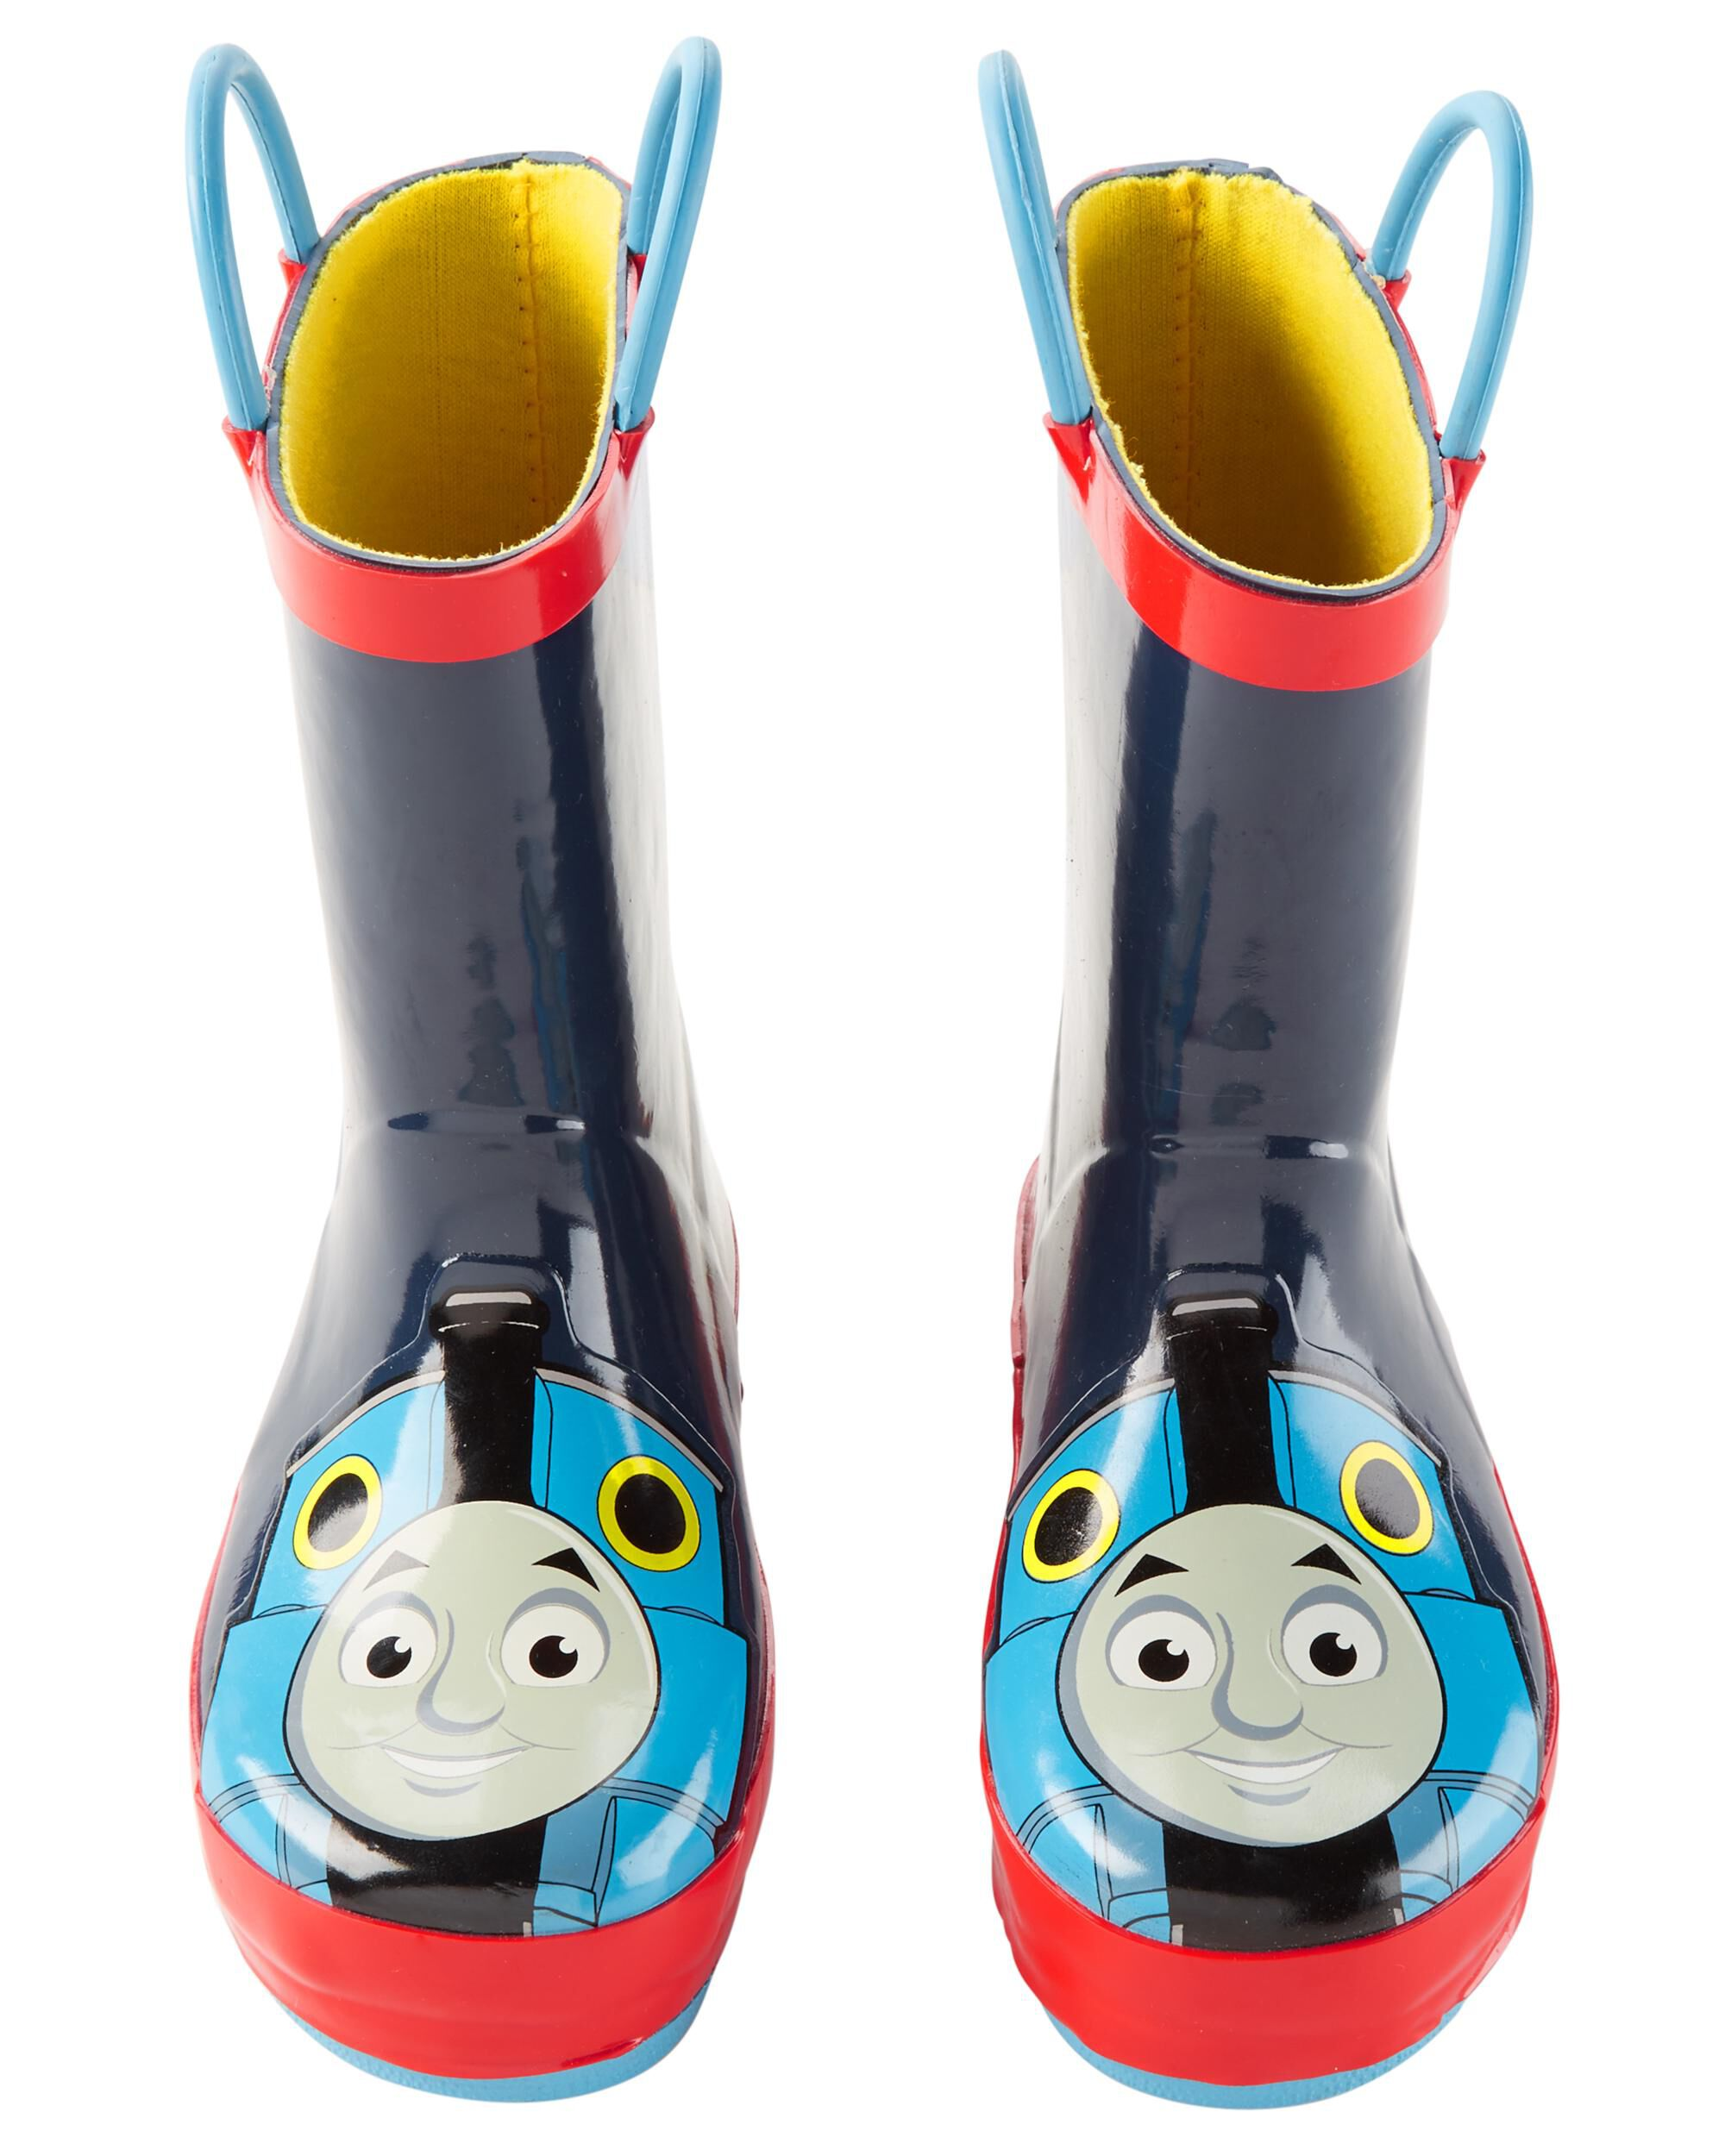 Thomas The Train Slippers Size 10 - Best Train 2018 a2b6131b2336